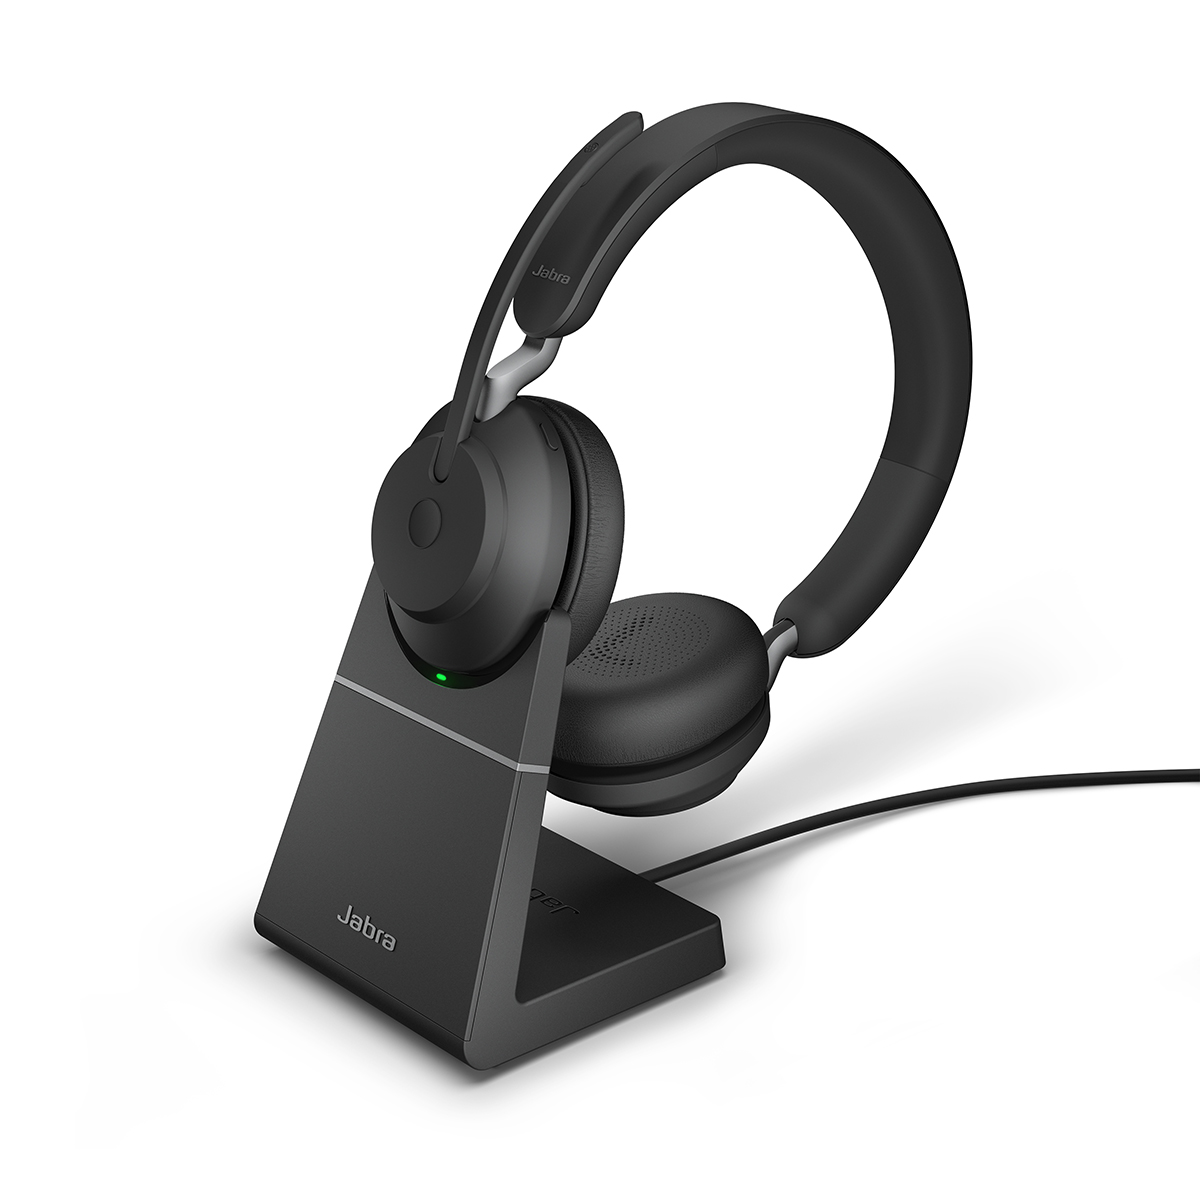 Jabra Evolve2 65 USB-C UC Stereo Headset with Charging Stand